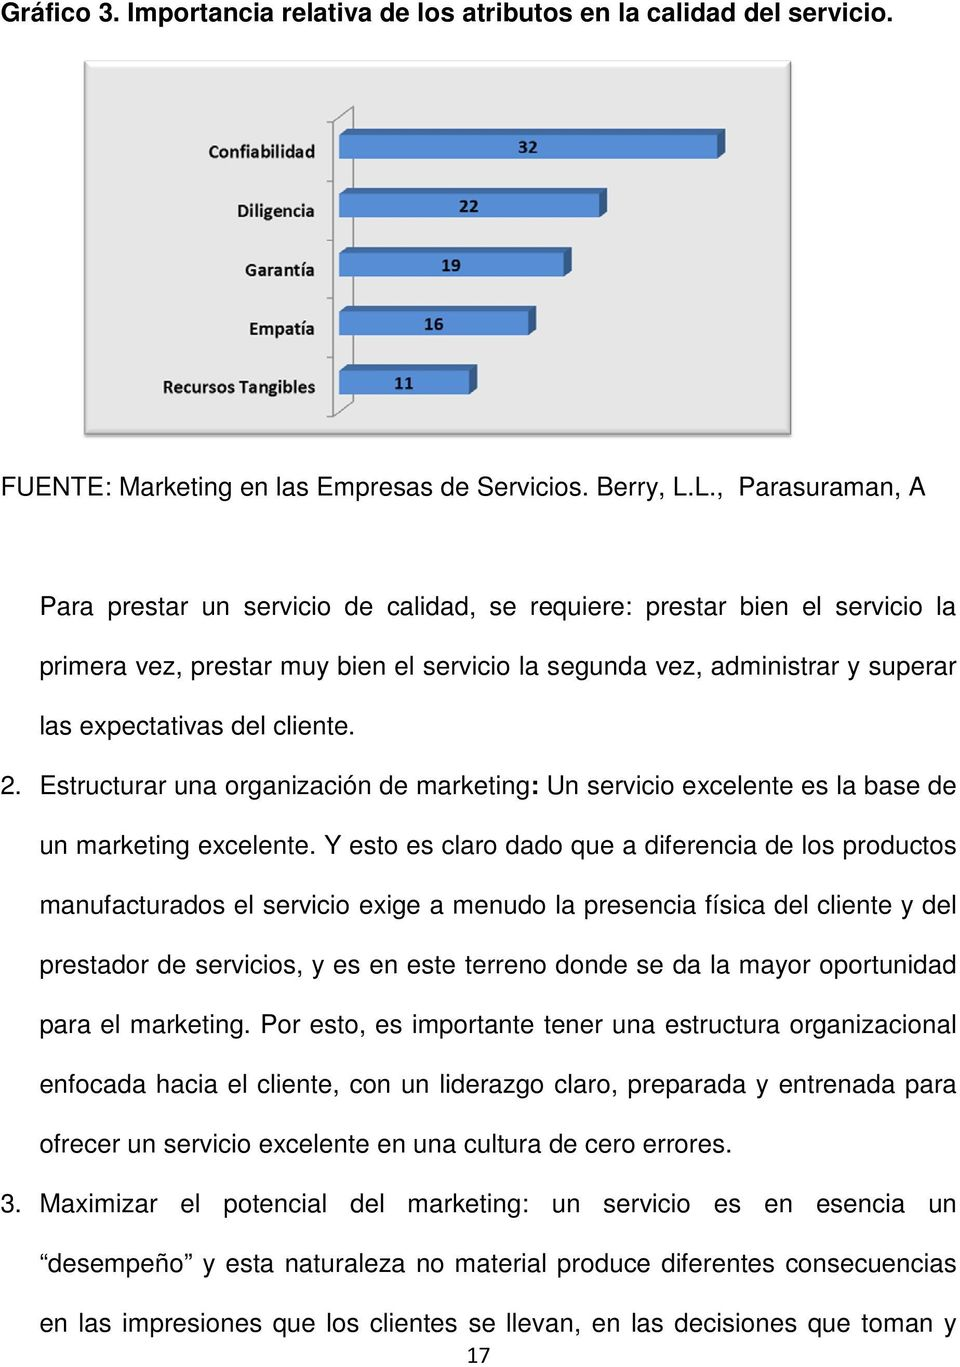 cliente. 2. Estructurar una organización de marketing: Un servicio excelente es la base de un marketing excelente.